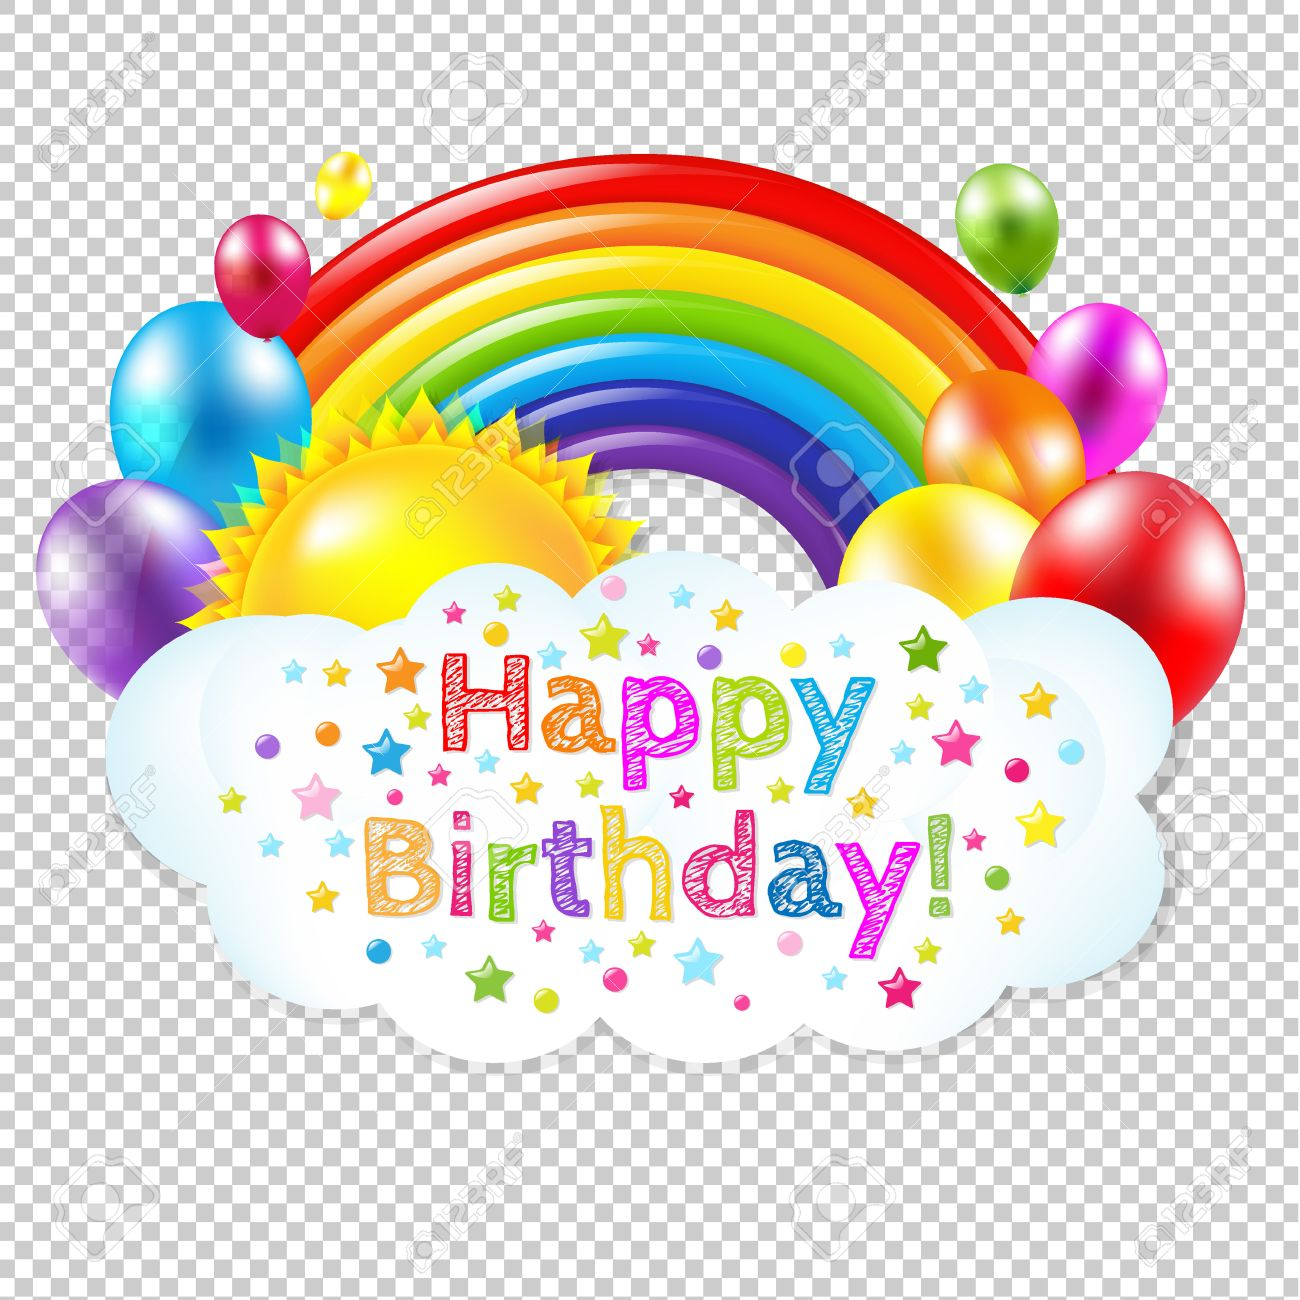 happy birthday banner clipart free ; 57247690-happy-birthday-banner-banner-with-rainbow-isolated-isolated-on-transparent-background-with-gradient--Stock-Photo